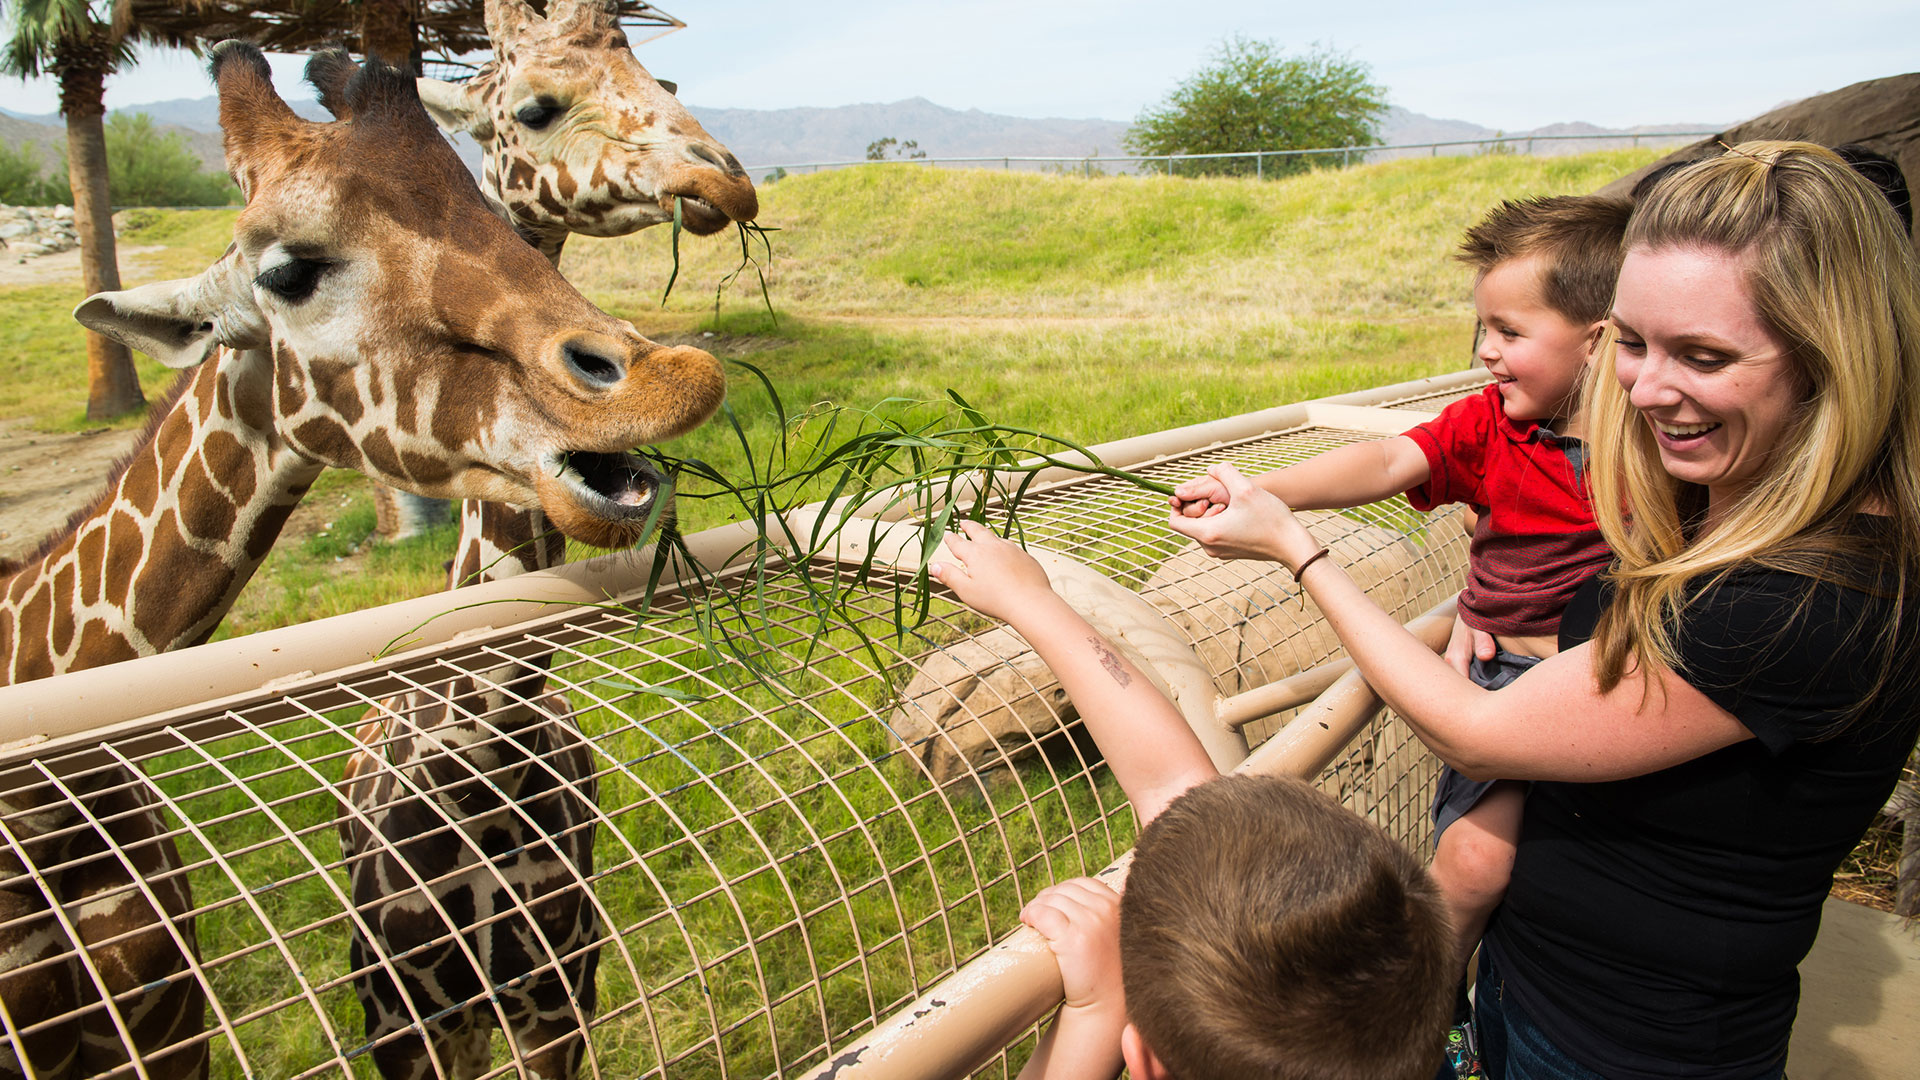 family-friendly fun at the living desert